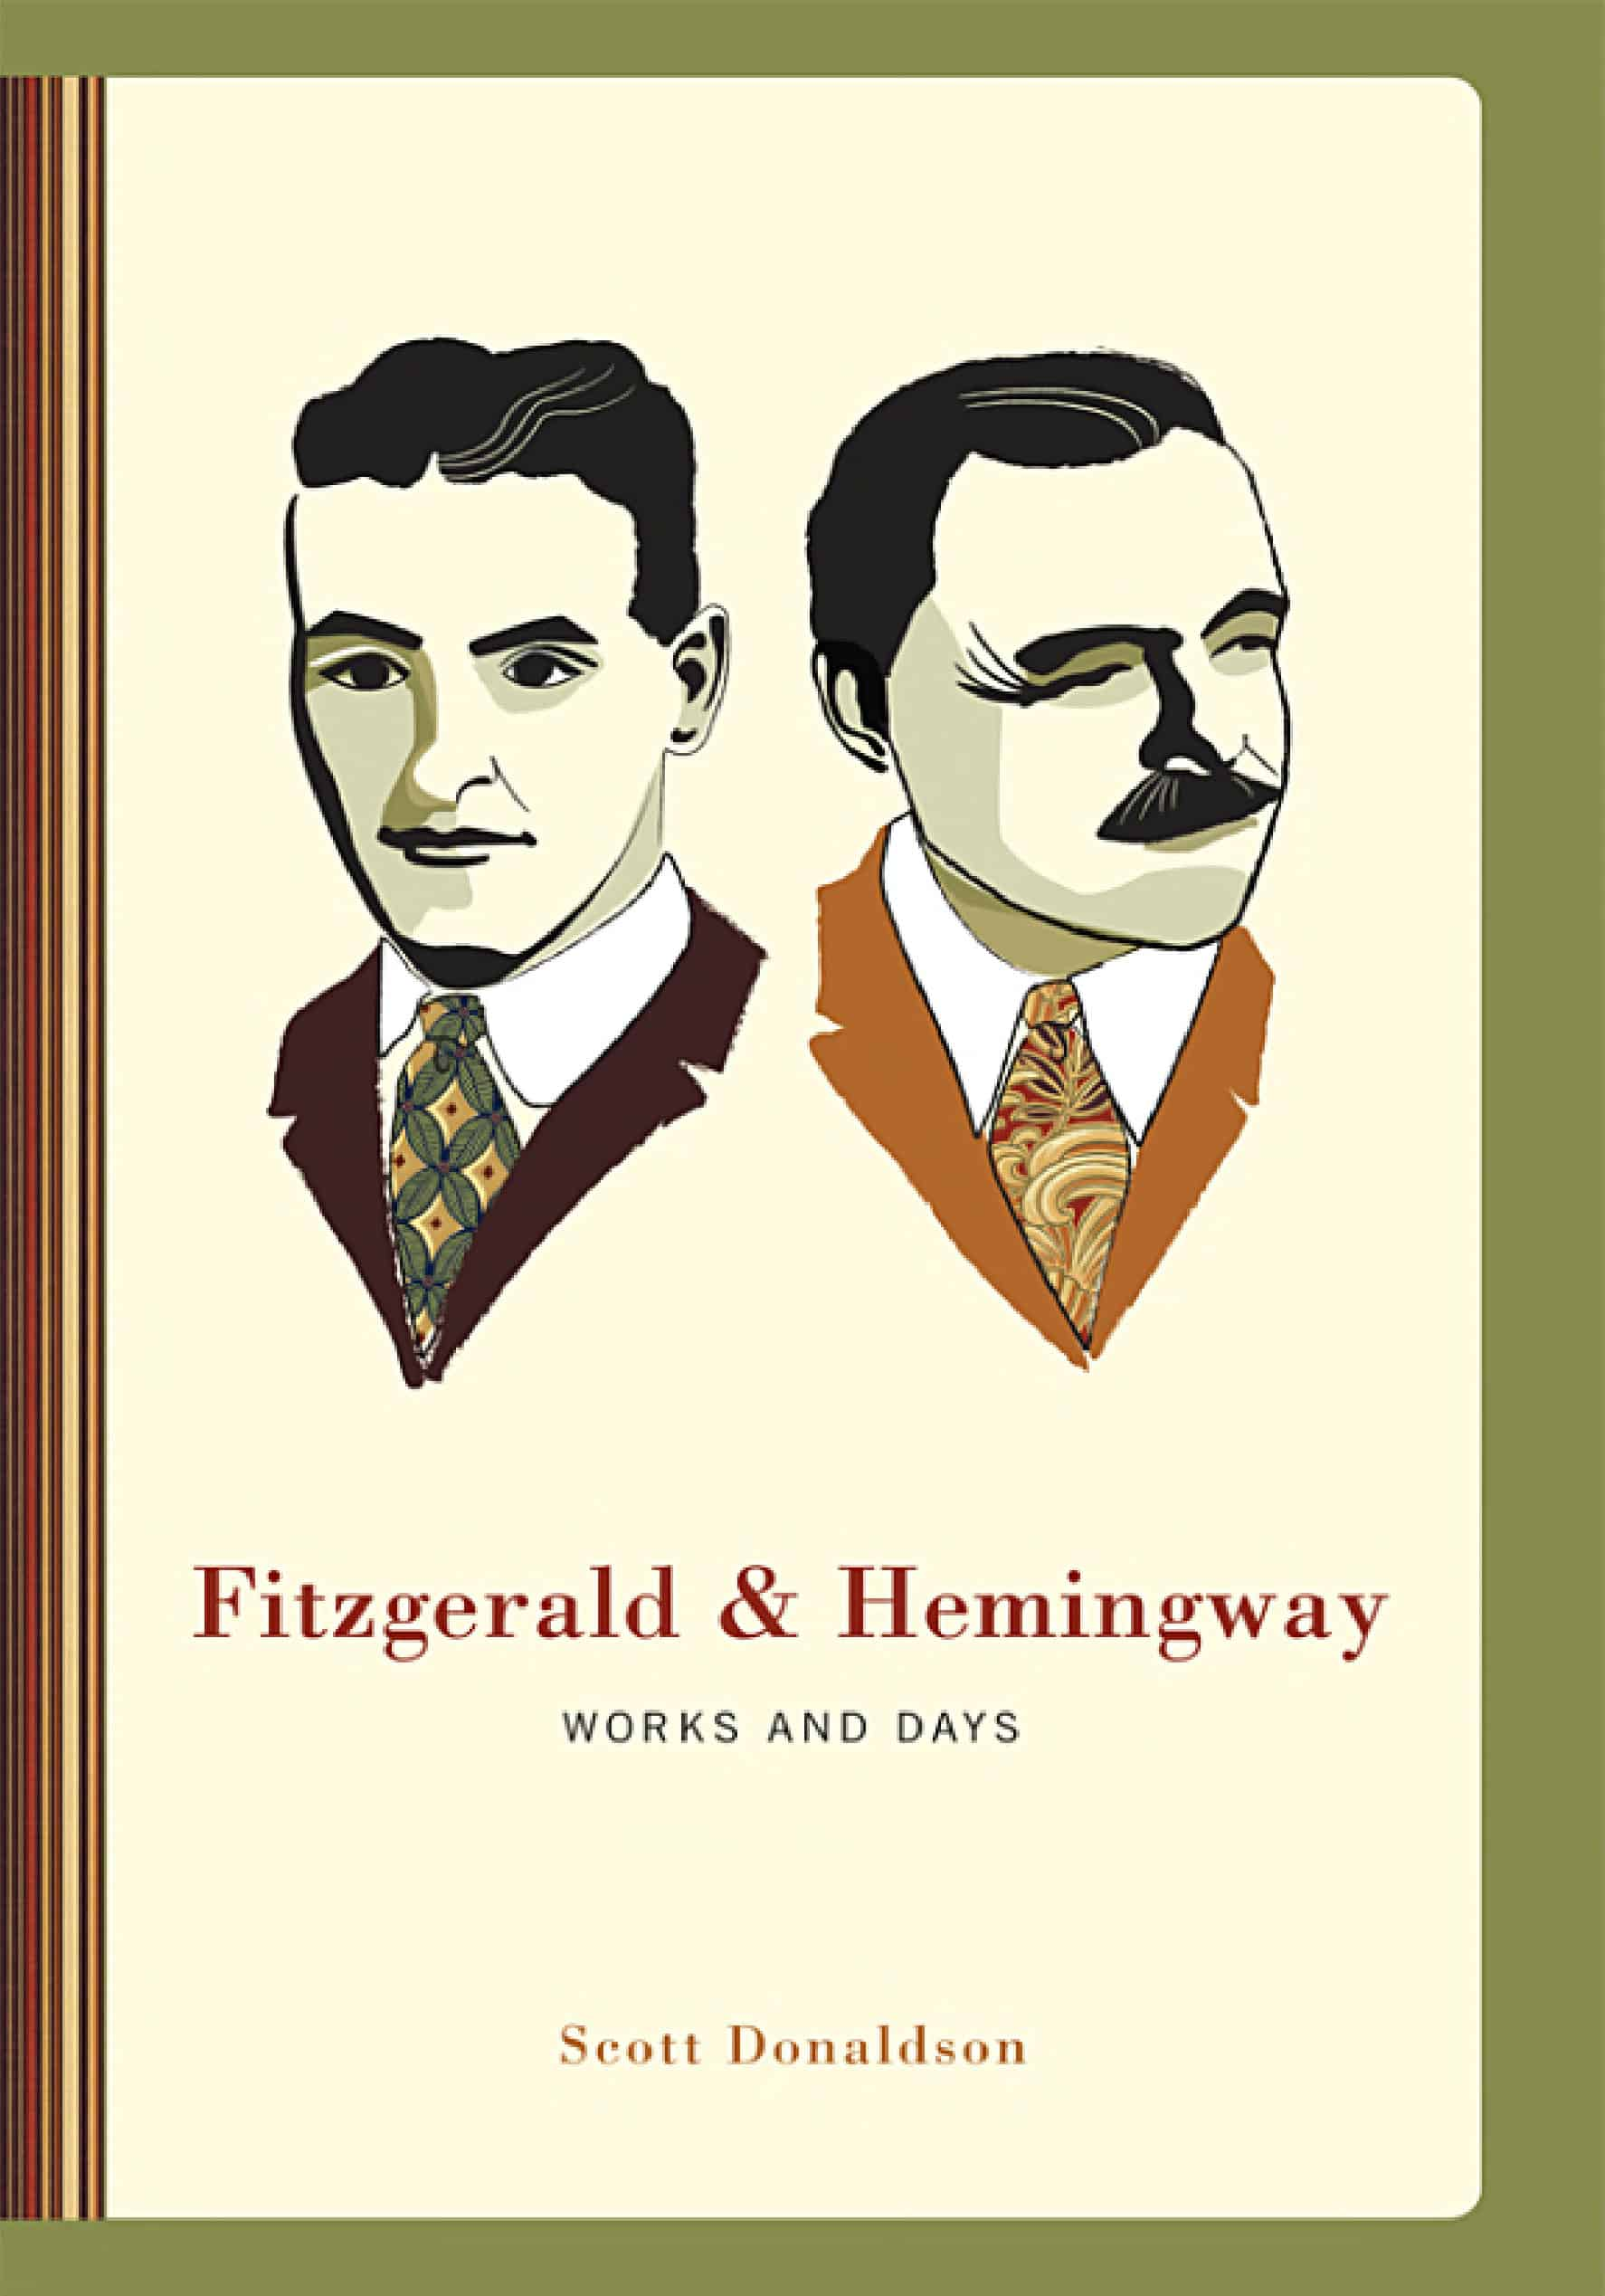 Fitzgerald and Hemingway Works and Days - Fitzgerald and Hemingway: Works and Days